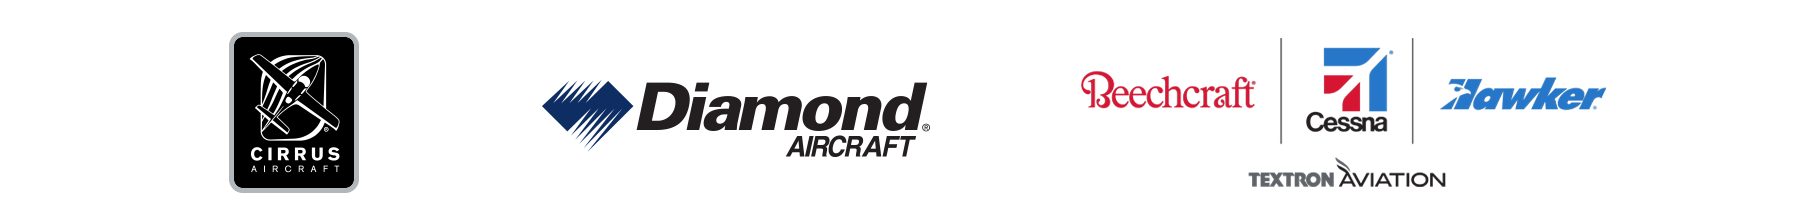 OEM Partners Cirrus Aircraft, Diamond Aircraft and Textron Aviation